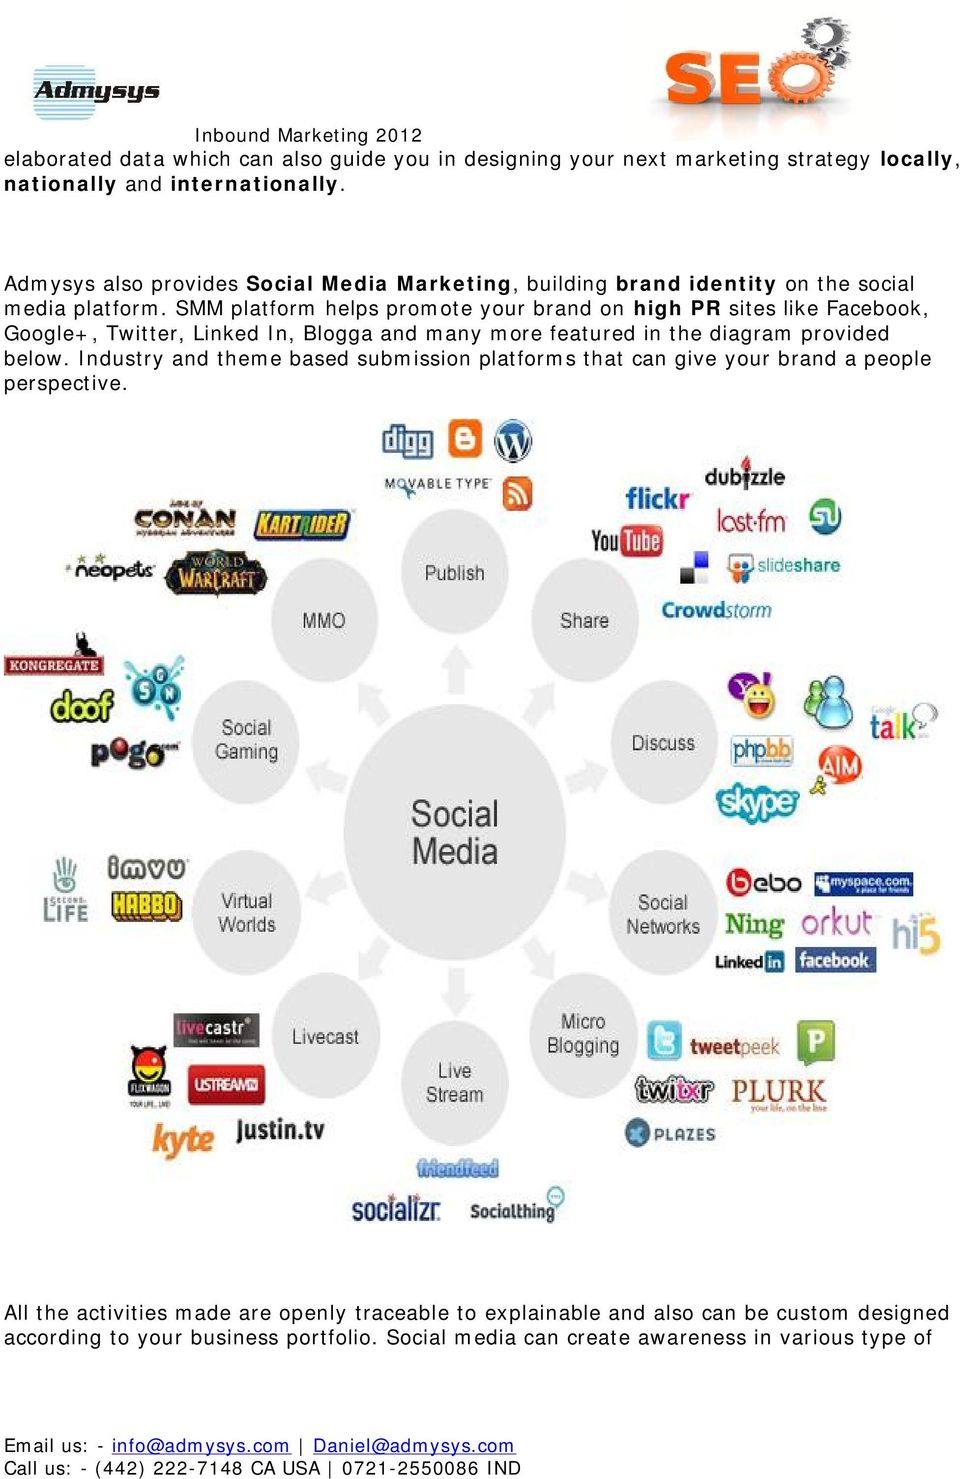 SMM platform helps promote your brand on high PR sites like Facebook, Google+, Twitter, Linked In, Blogga and many more featured in the diagram provided below.